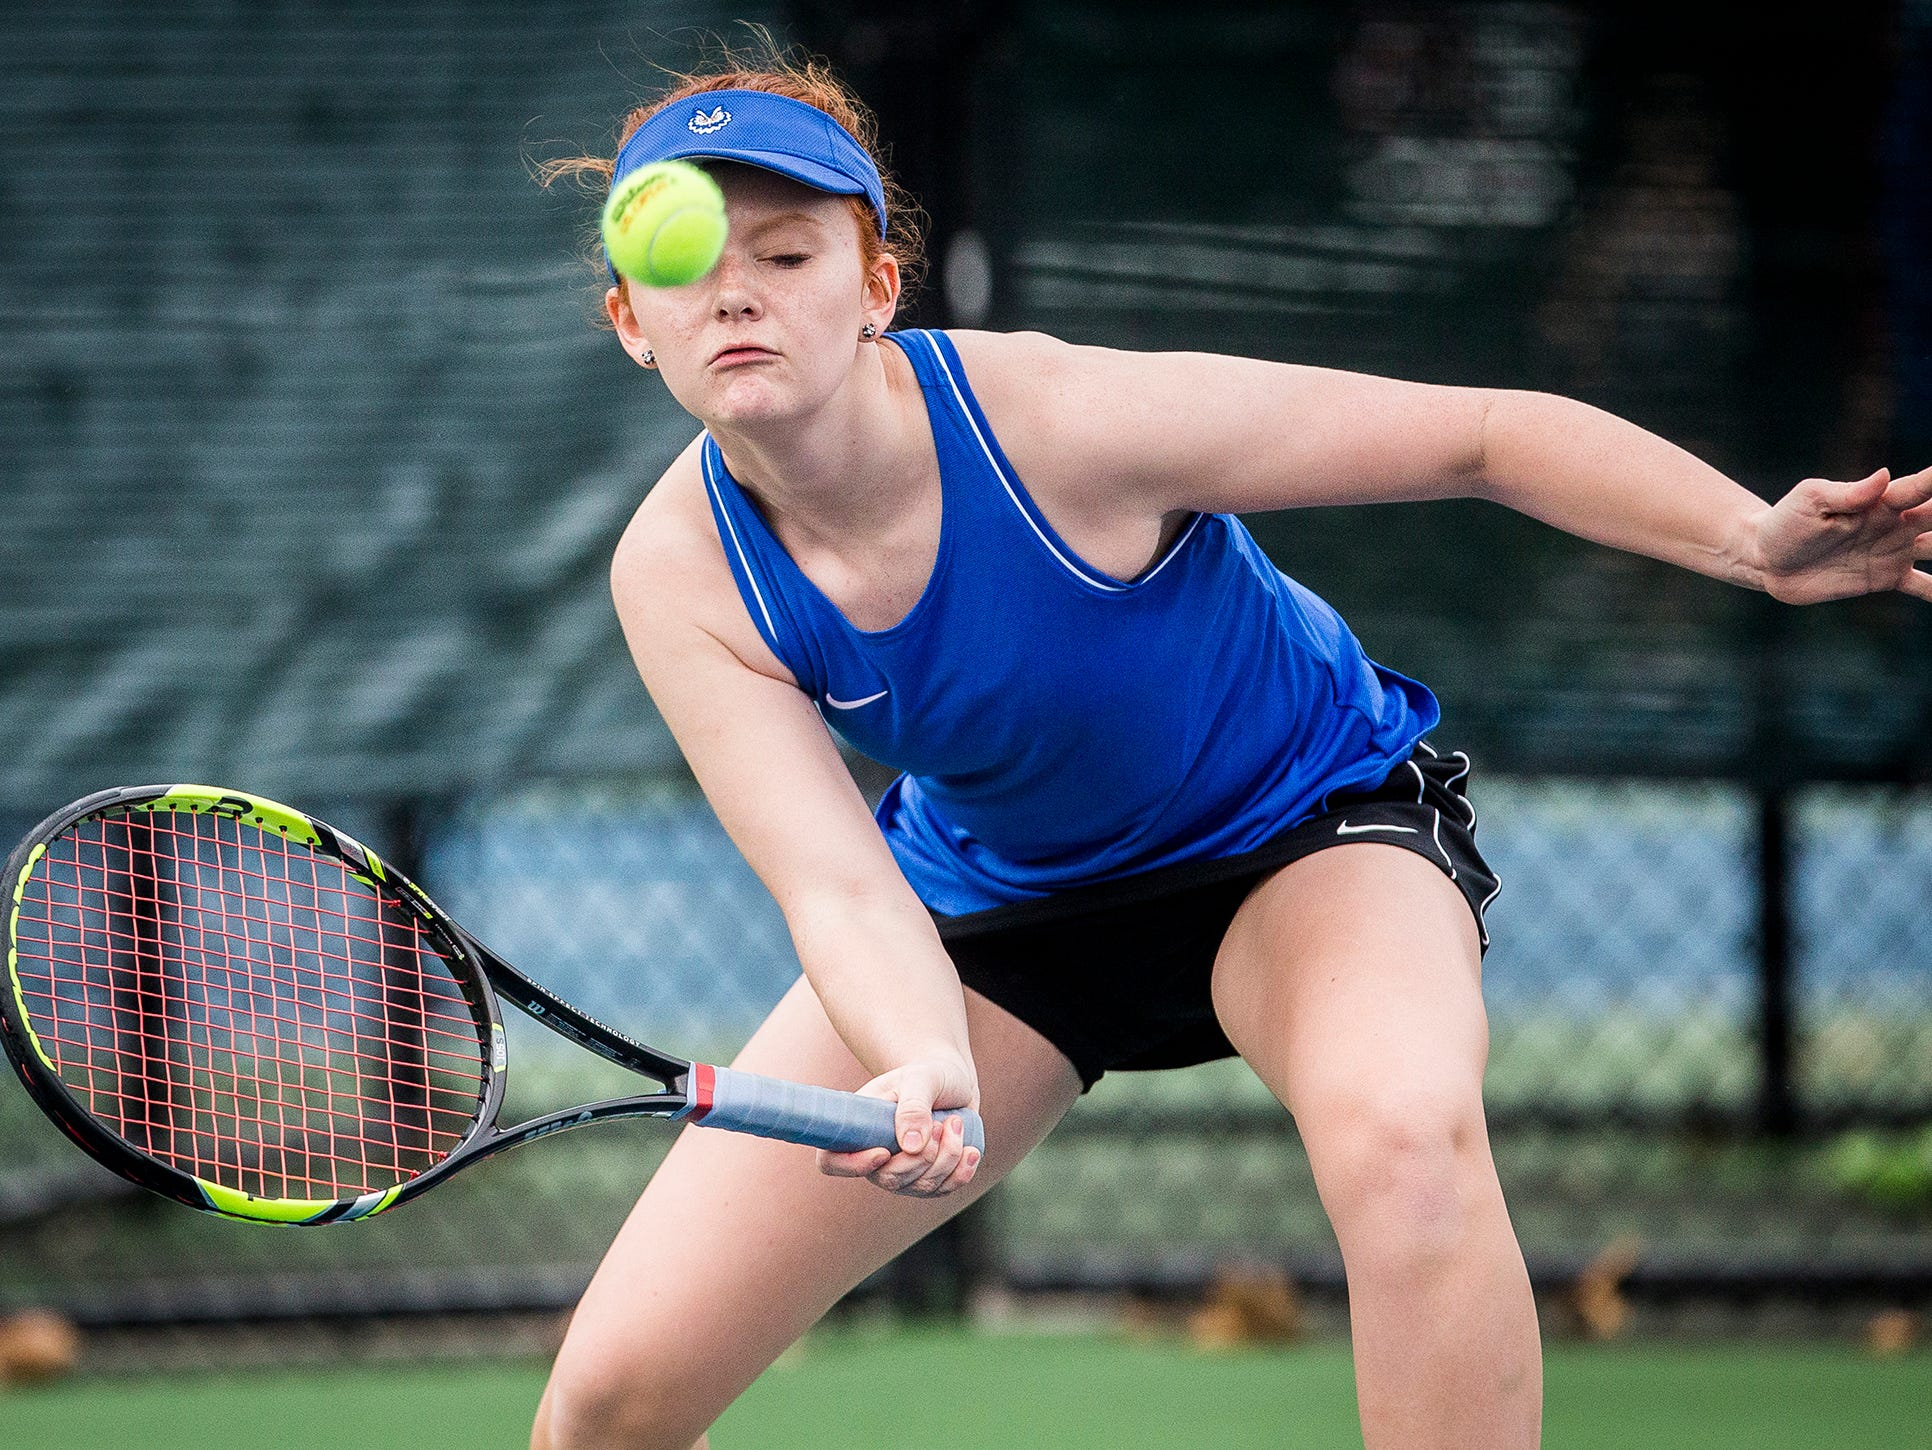 Burris' Isabelle Berhman returns a hit from Central's Katie Hunter during their singles match at Ball State Thursday, April 11, 2019.